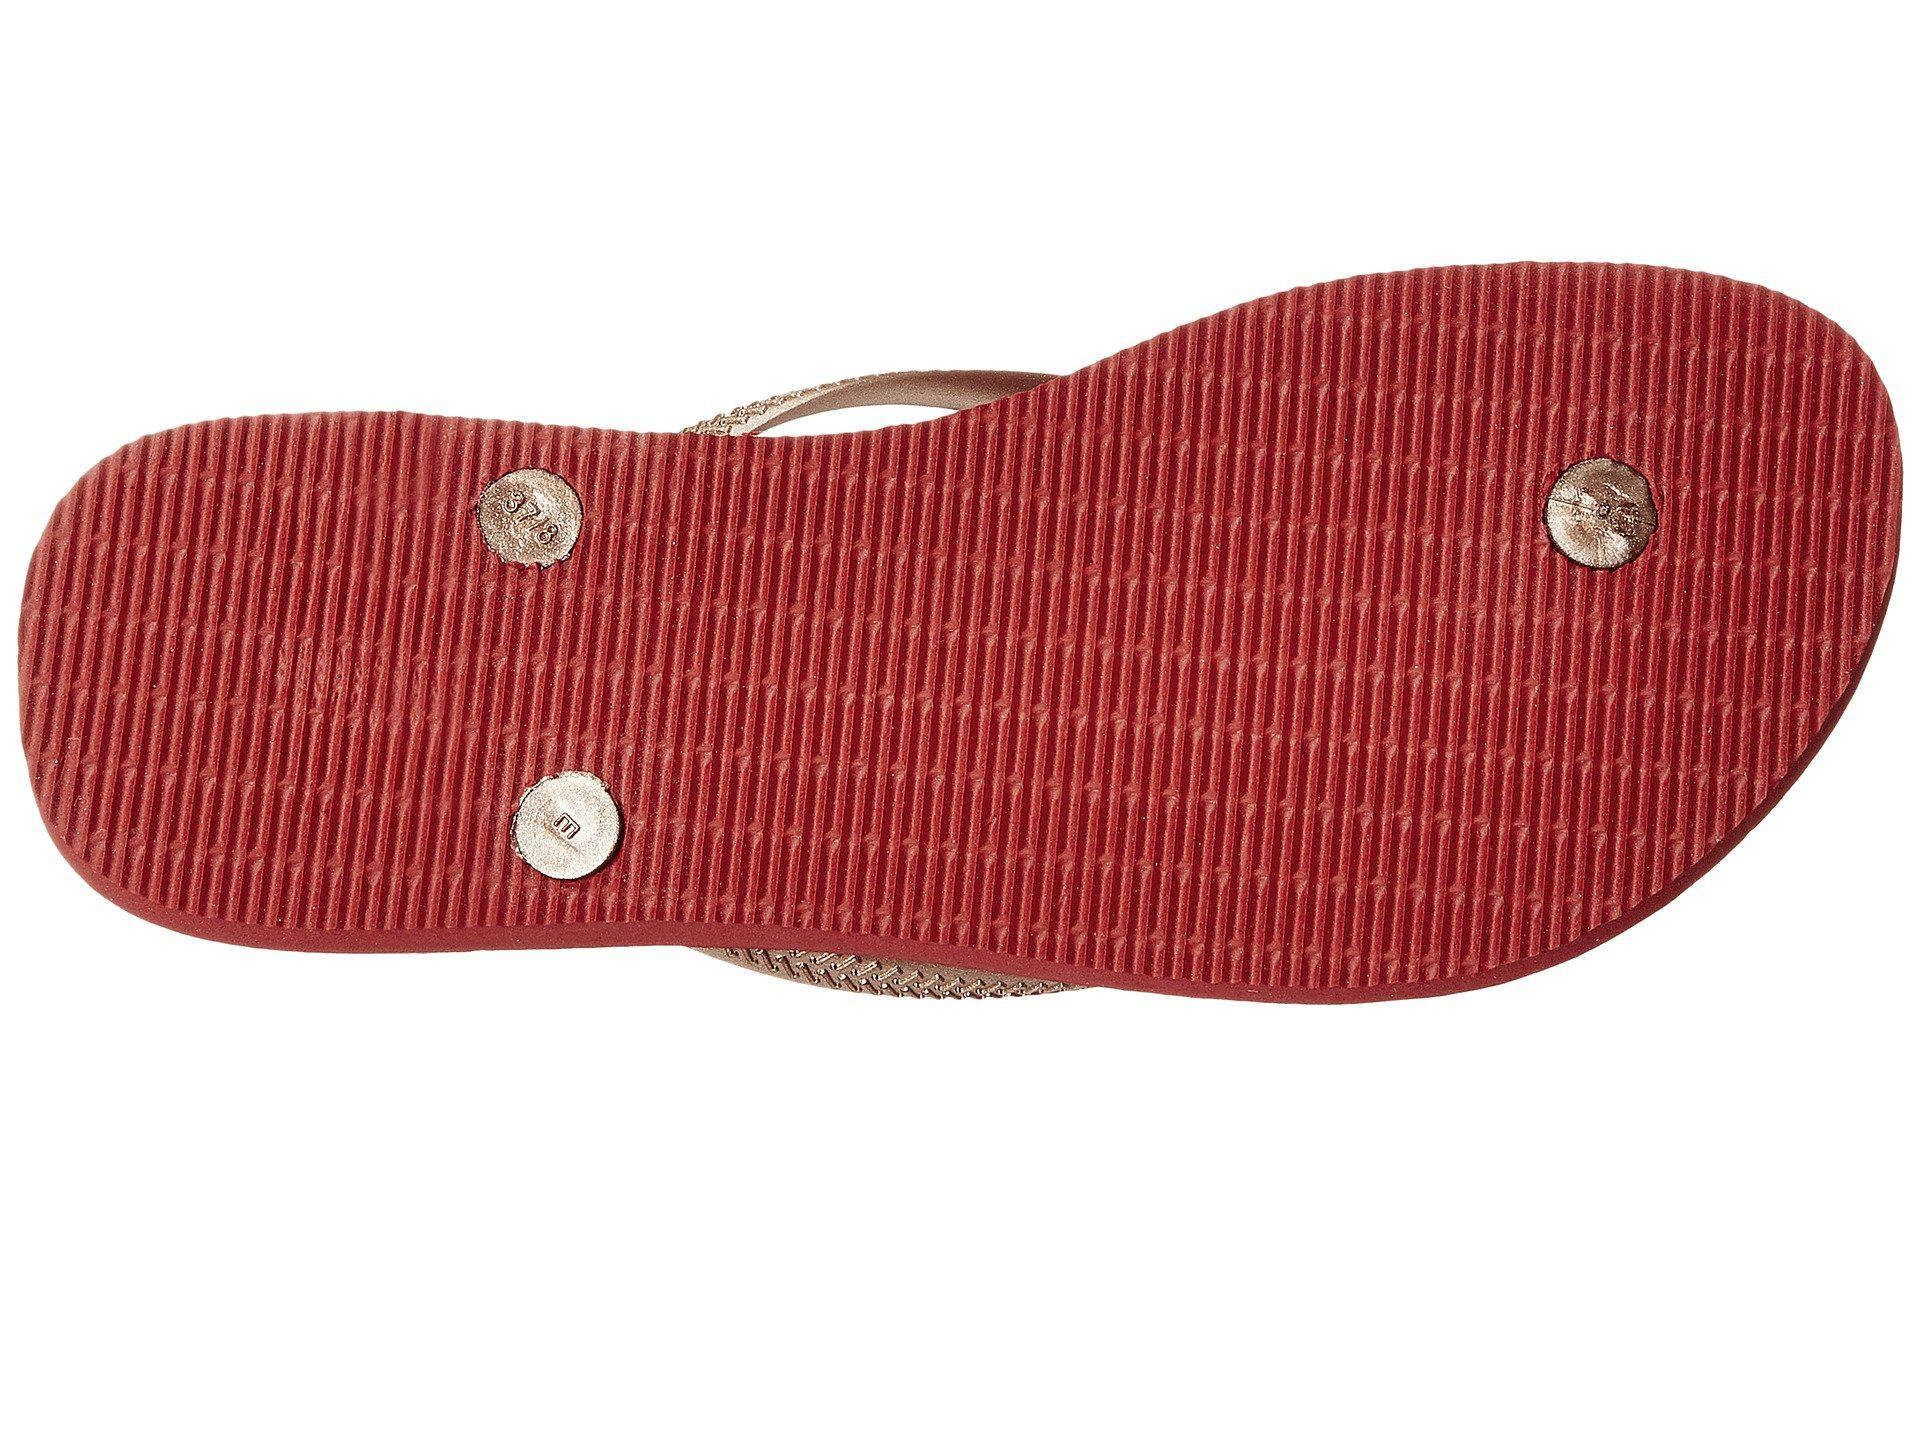 4b3c1add101c2 Lyst - Havaianas Slim Thematic Flip Flops in Red